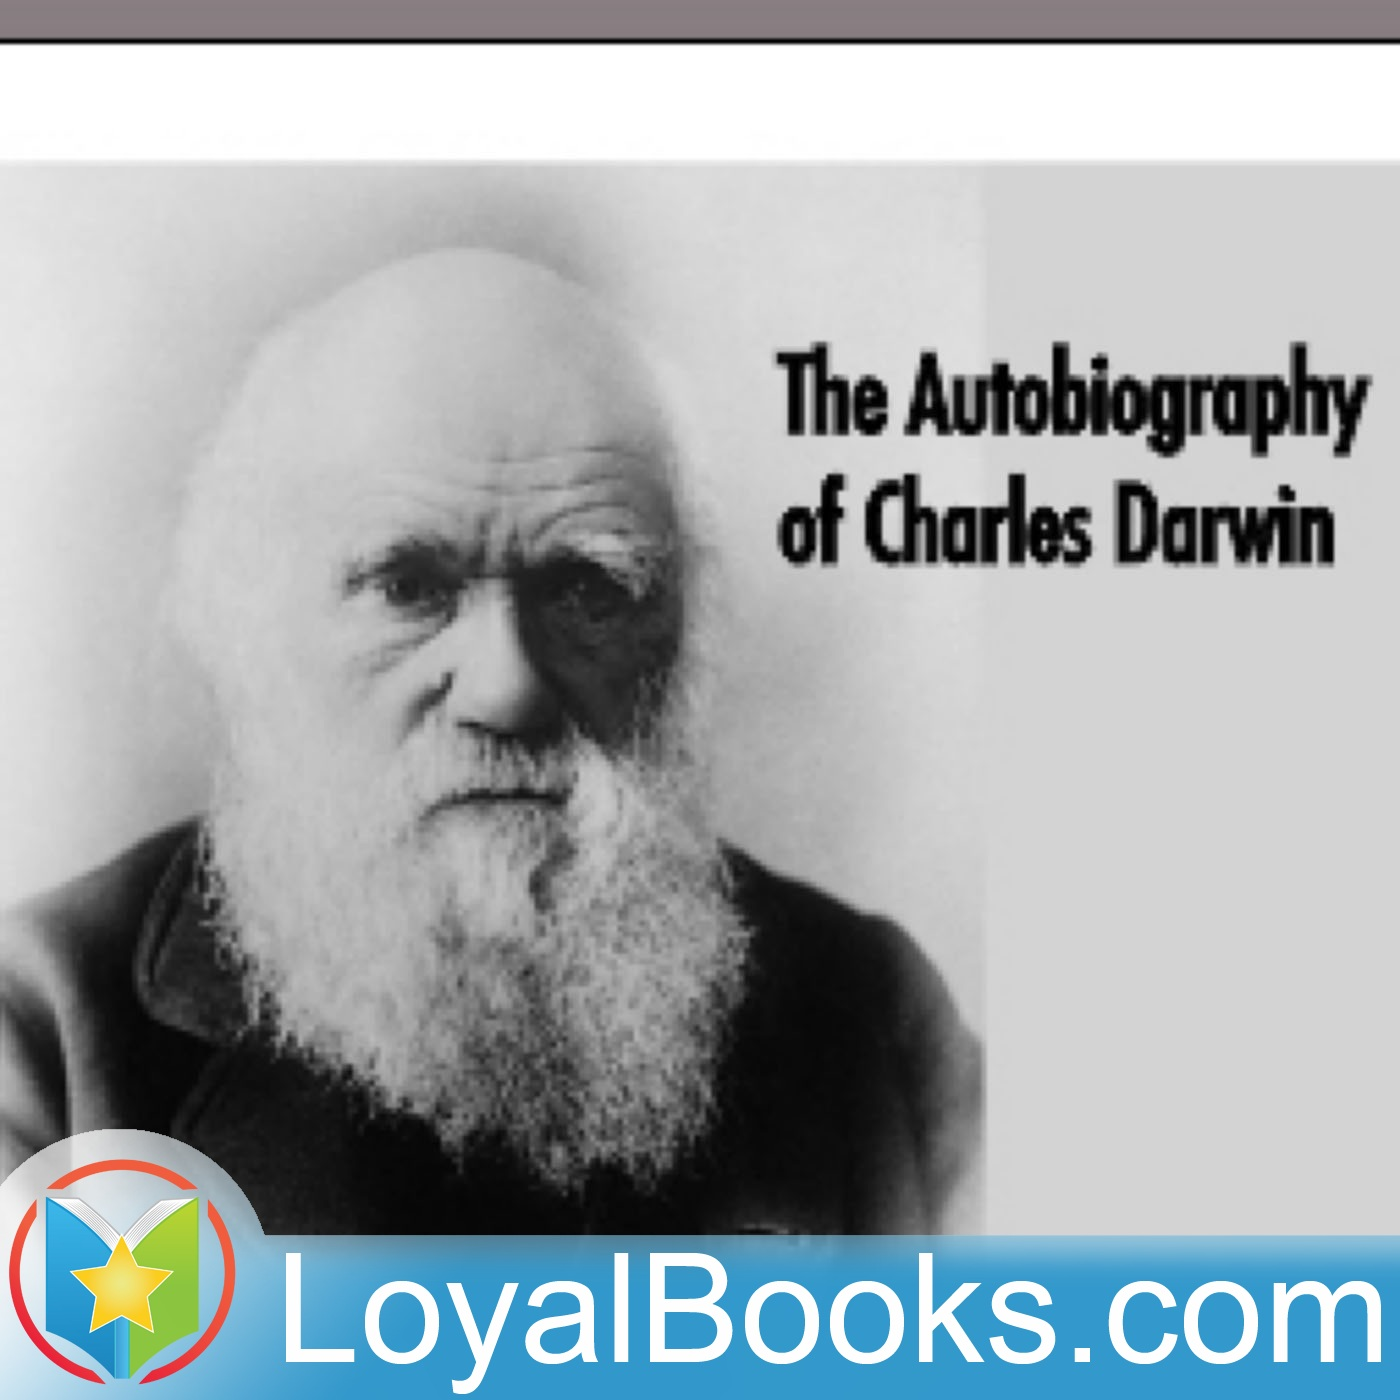 <![CDATA[The Autobiography of Charles Darwin by Charles Darwin]]>